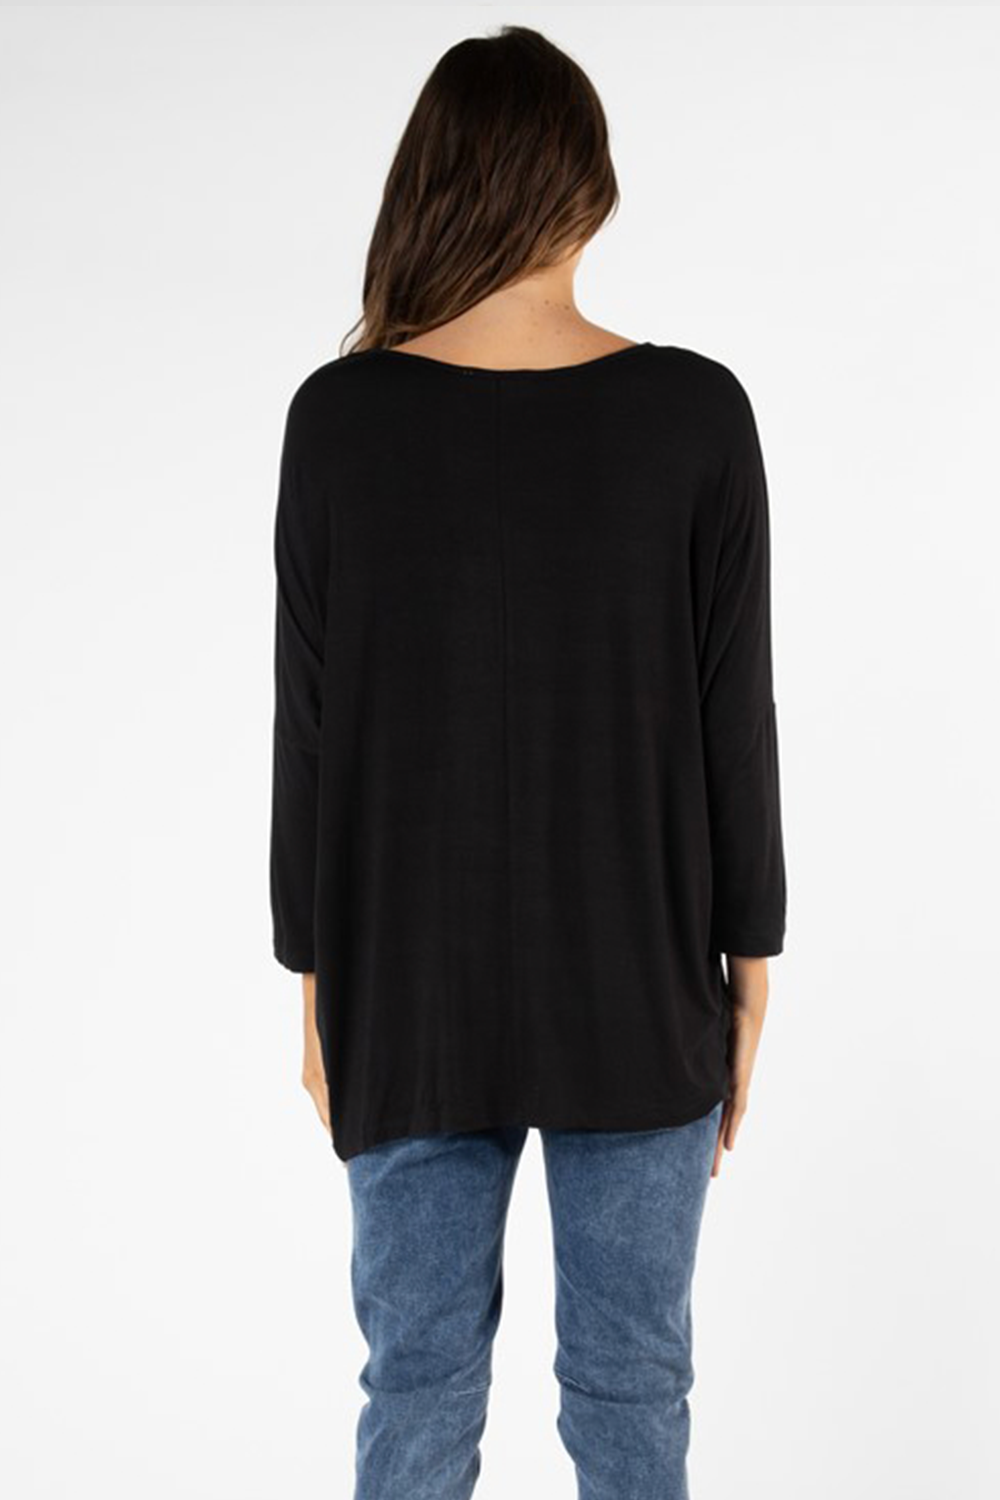 Atlanta 3/4 Sleeve Top by Betty Basic- Black